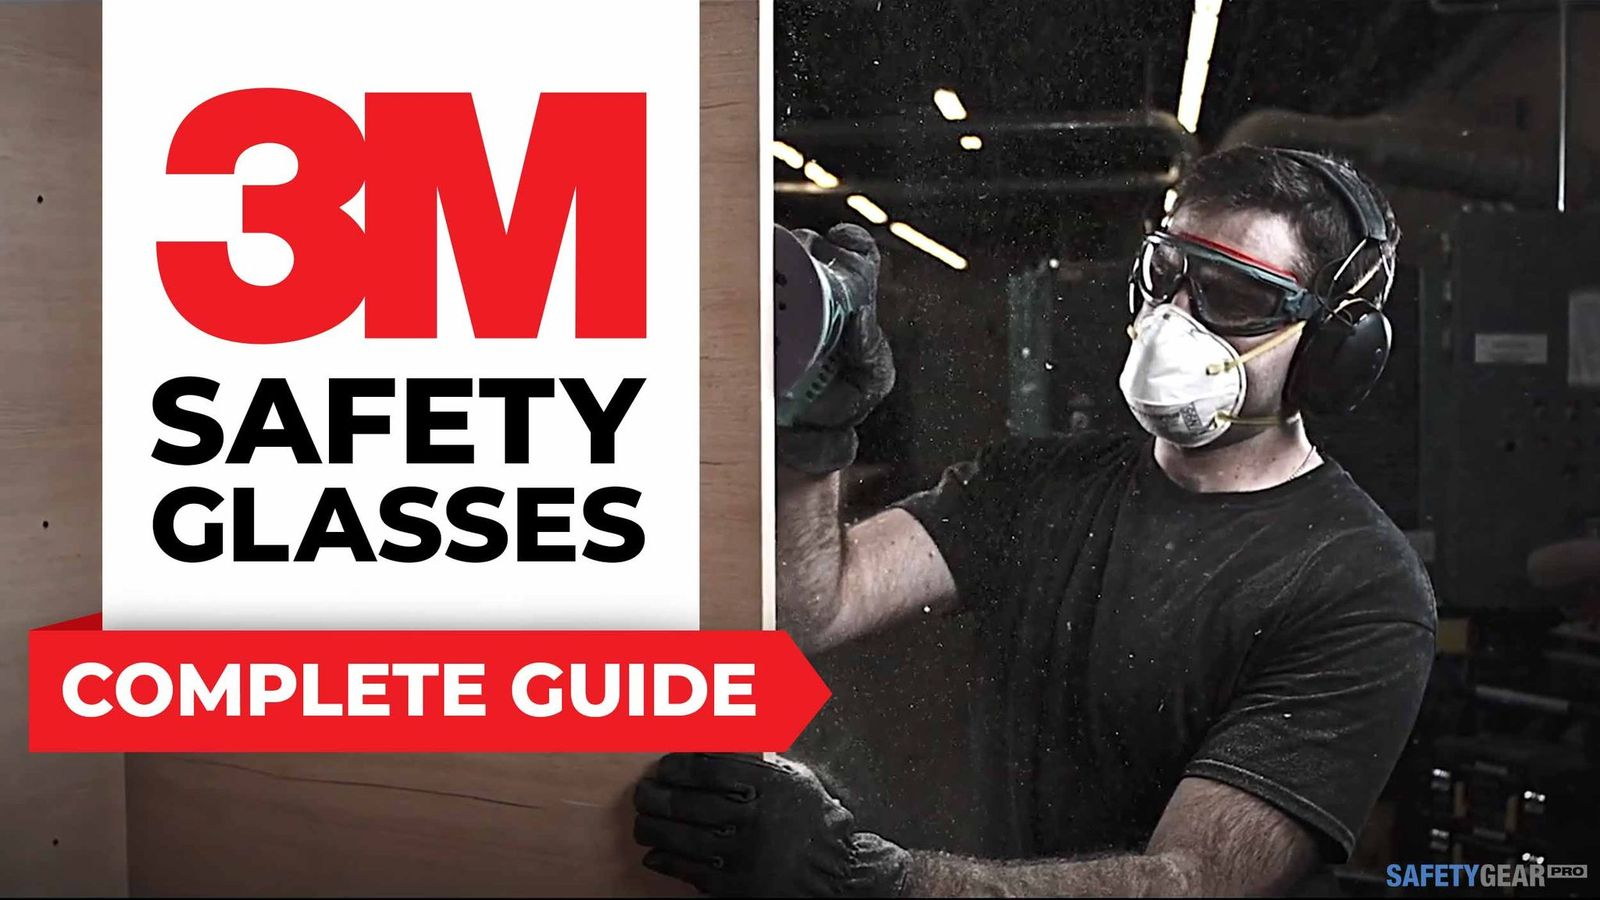 A Complete Guide To 3M Safety Glasses Header